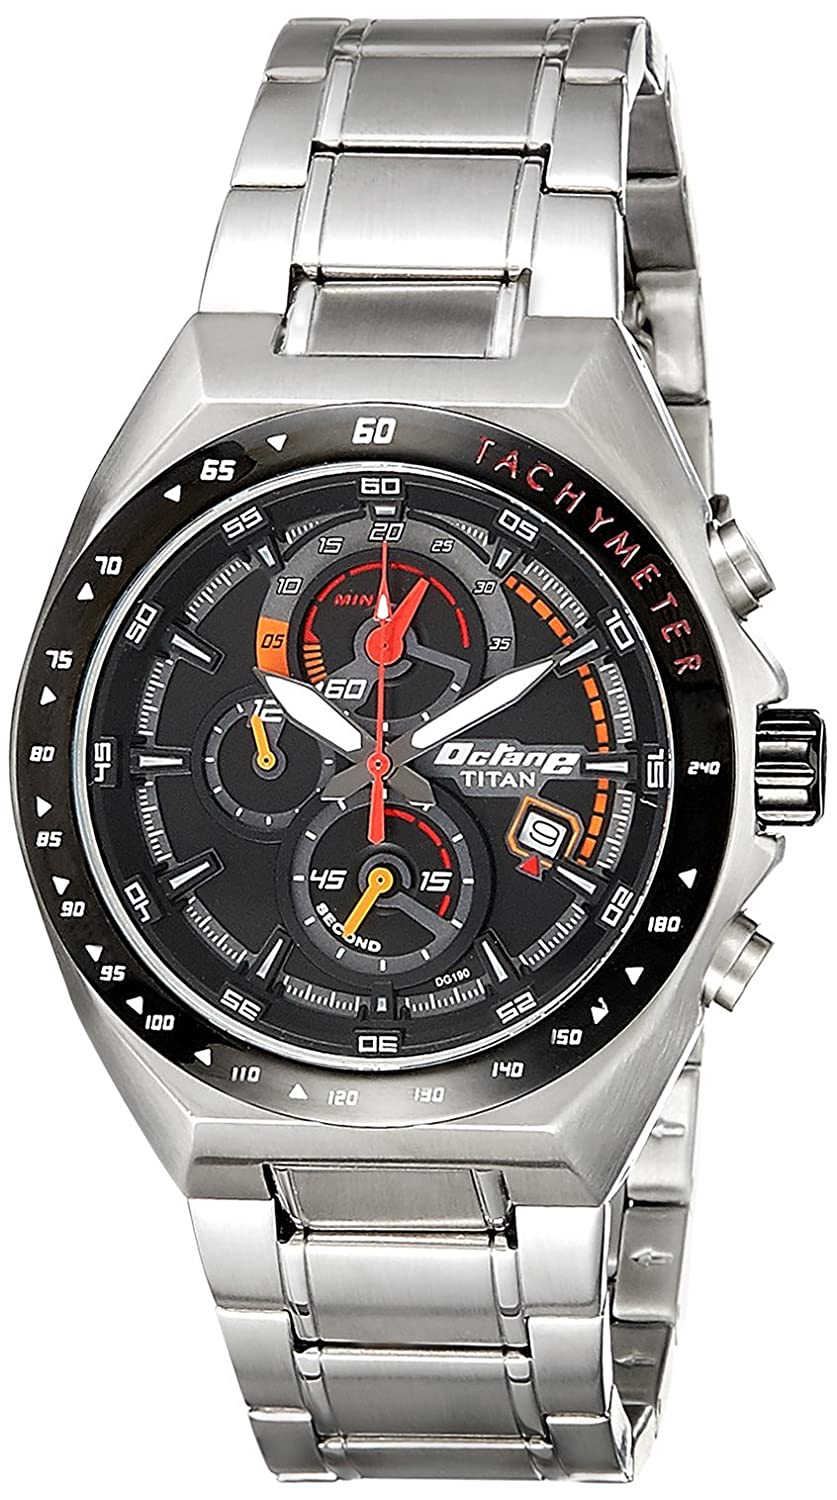 0c0a198b5c Buy Titan Octane Chronograph Black Dial Men's Watch -90048KM03 Online at  Low Prices in India - Amazon.in